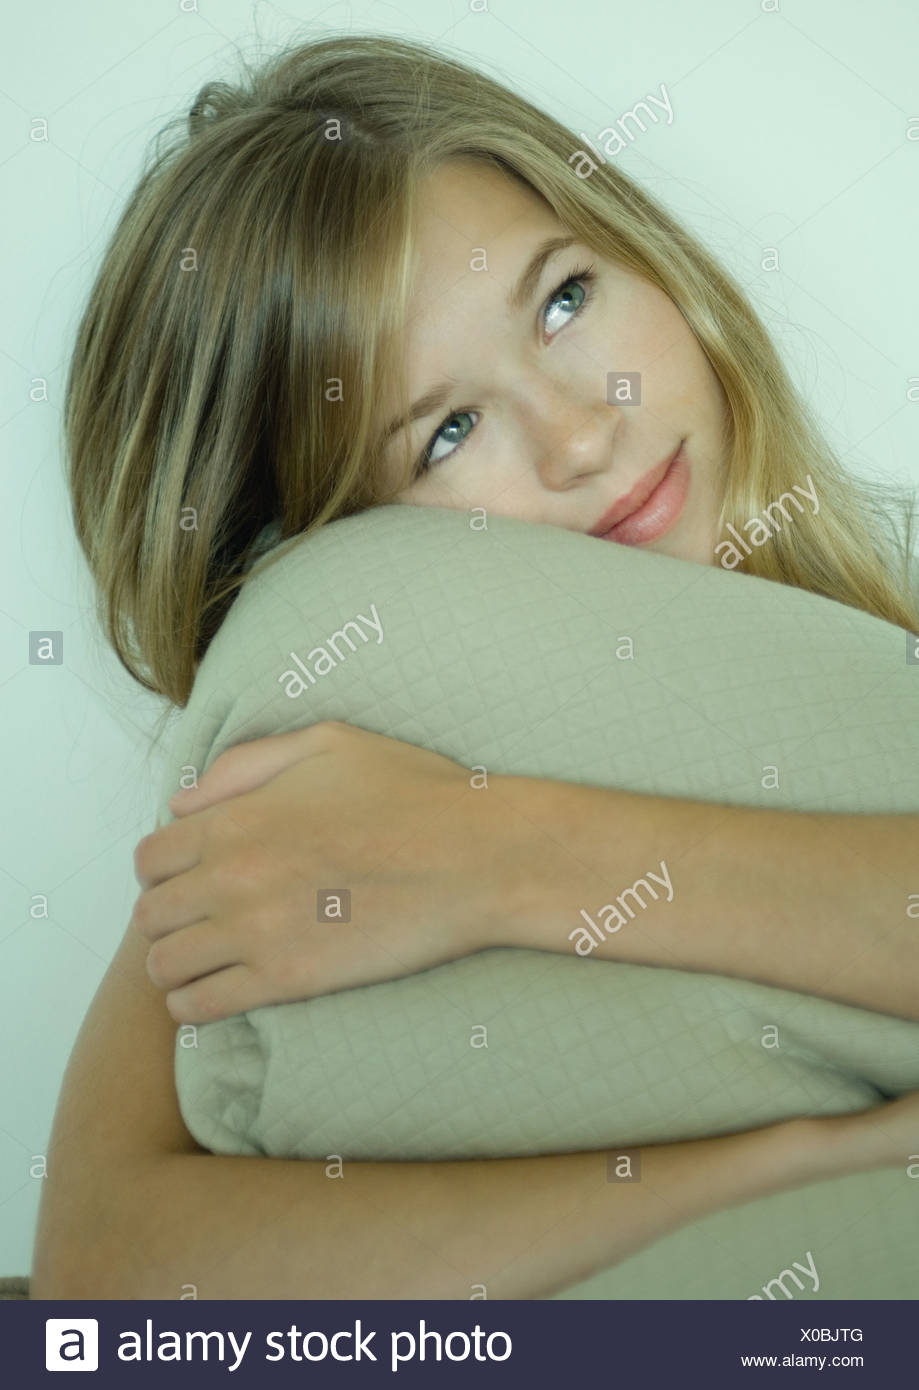 Young woman holding blanket - Stock Image